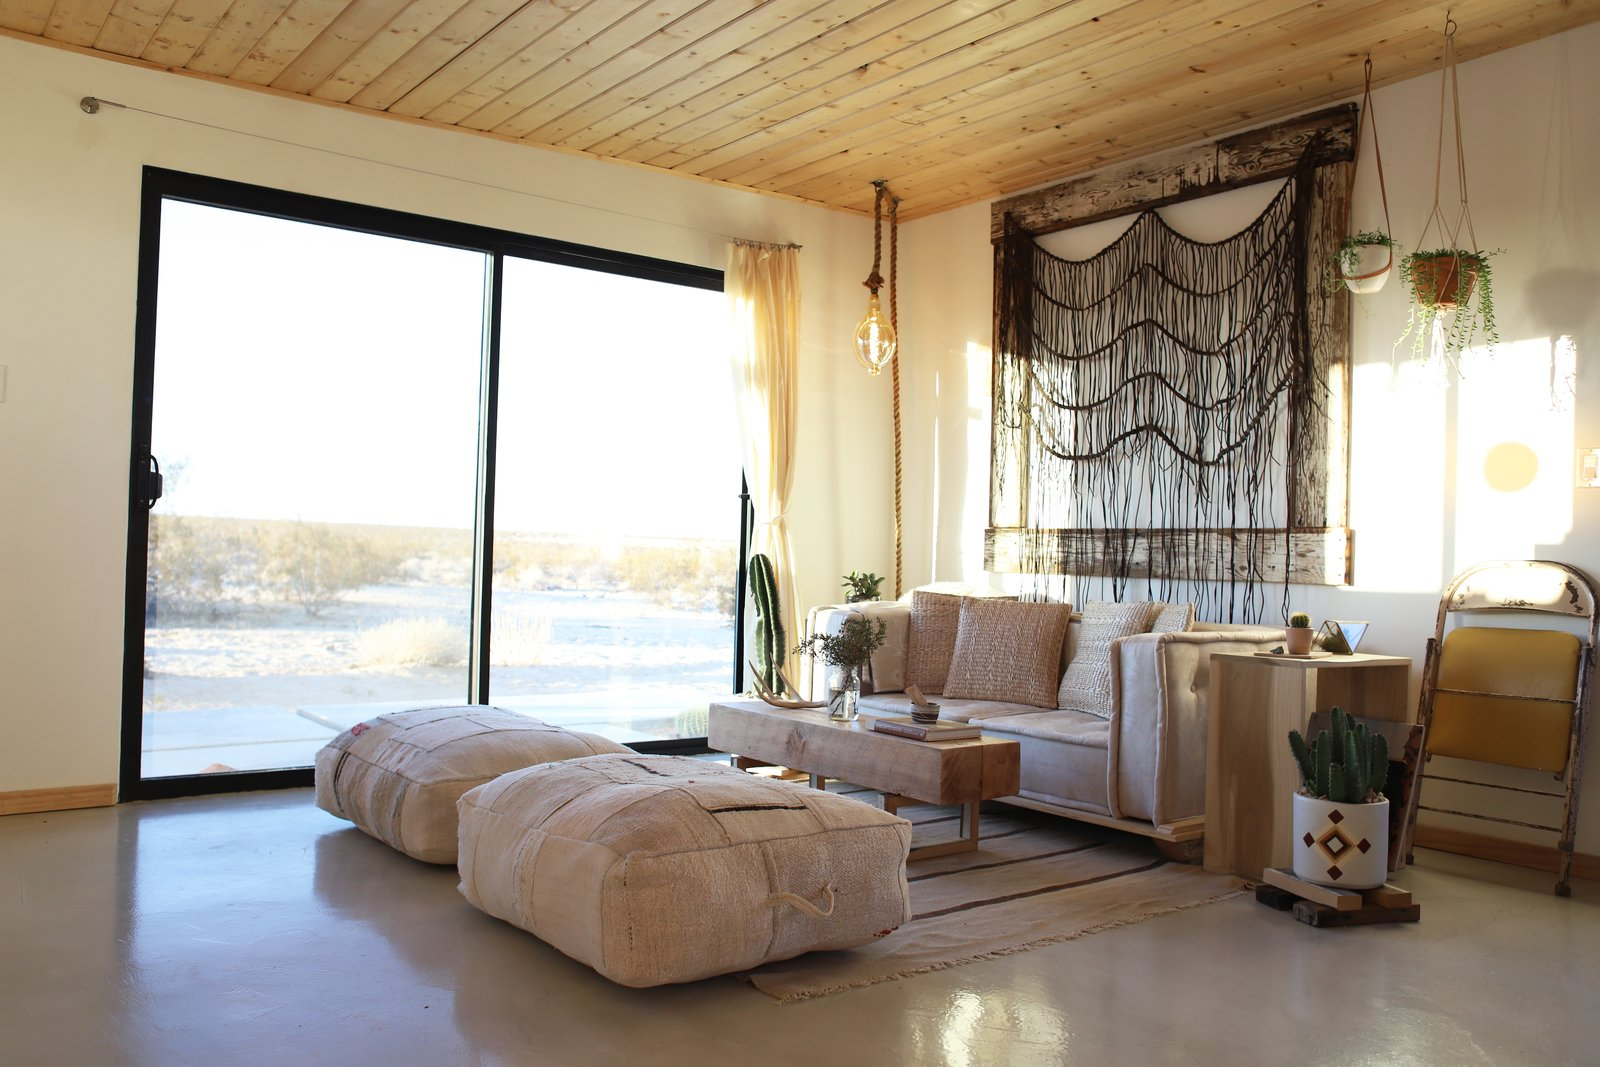 The macrame by xxx hangs in the living room and sliding glass doors were added to help integrate the home to the outdoors. The abundant desert sunshine makes natural lighting a viable option all day long.